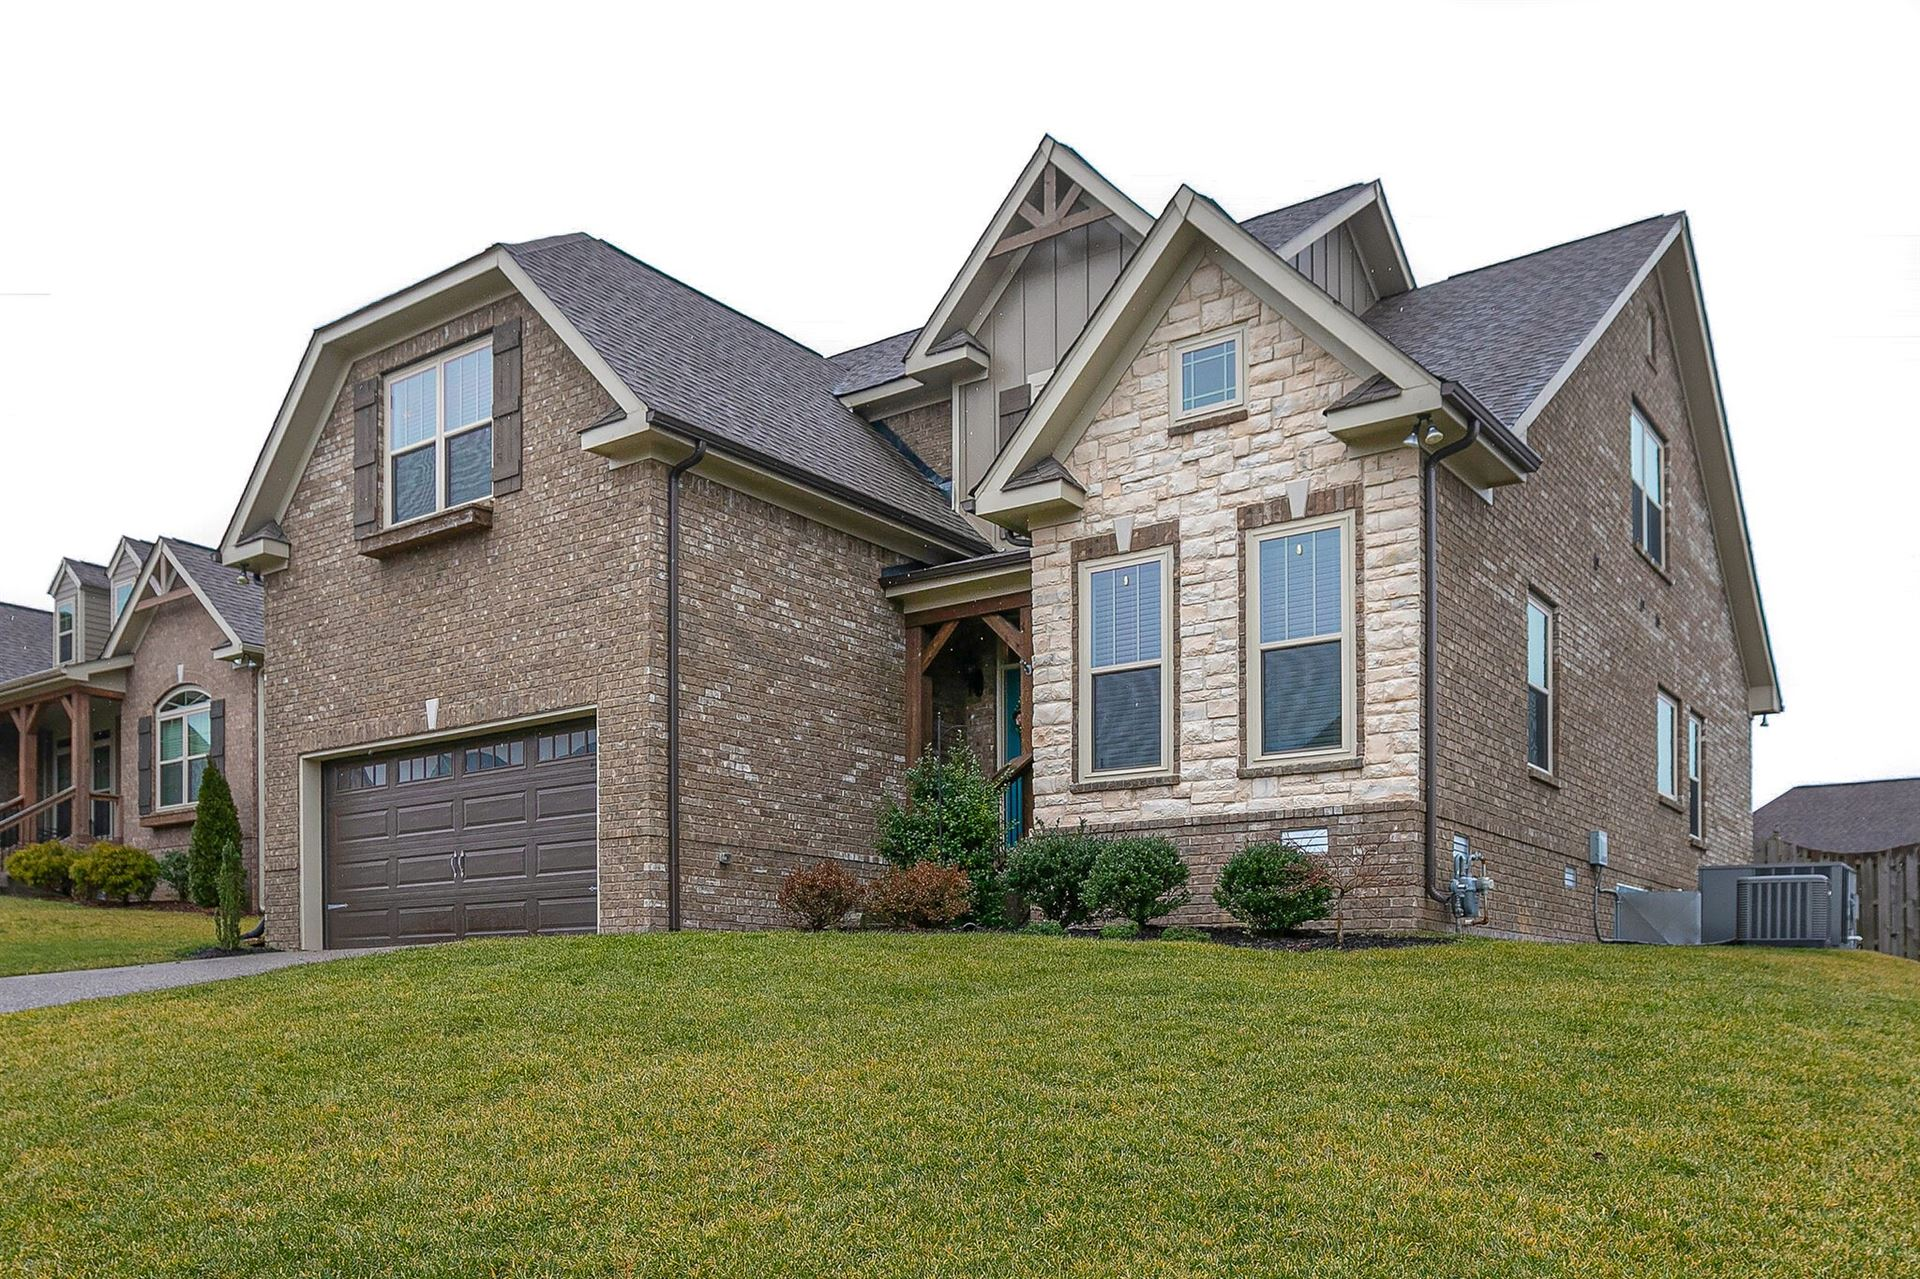 Photo of 5006 Speight St, Spring Hill, TN 37174 (MLS # 2232271)